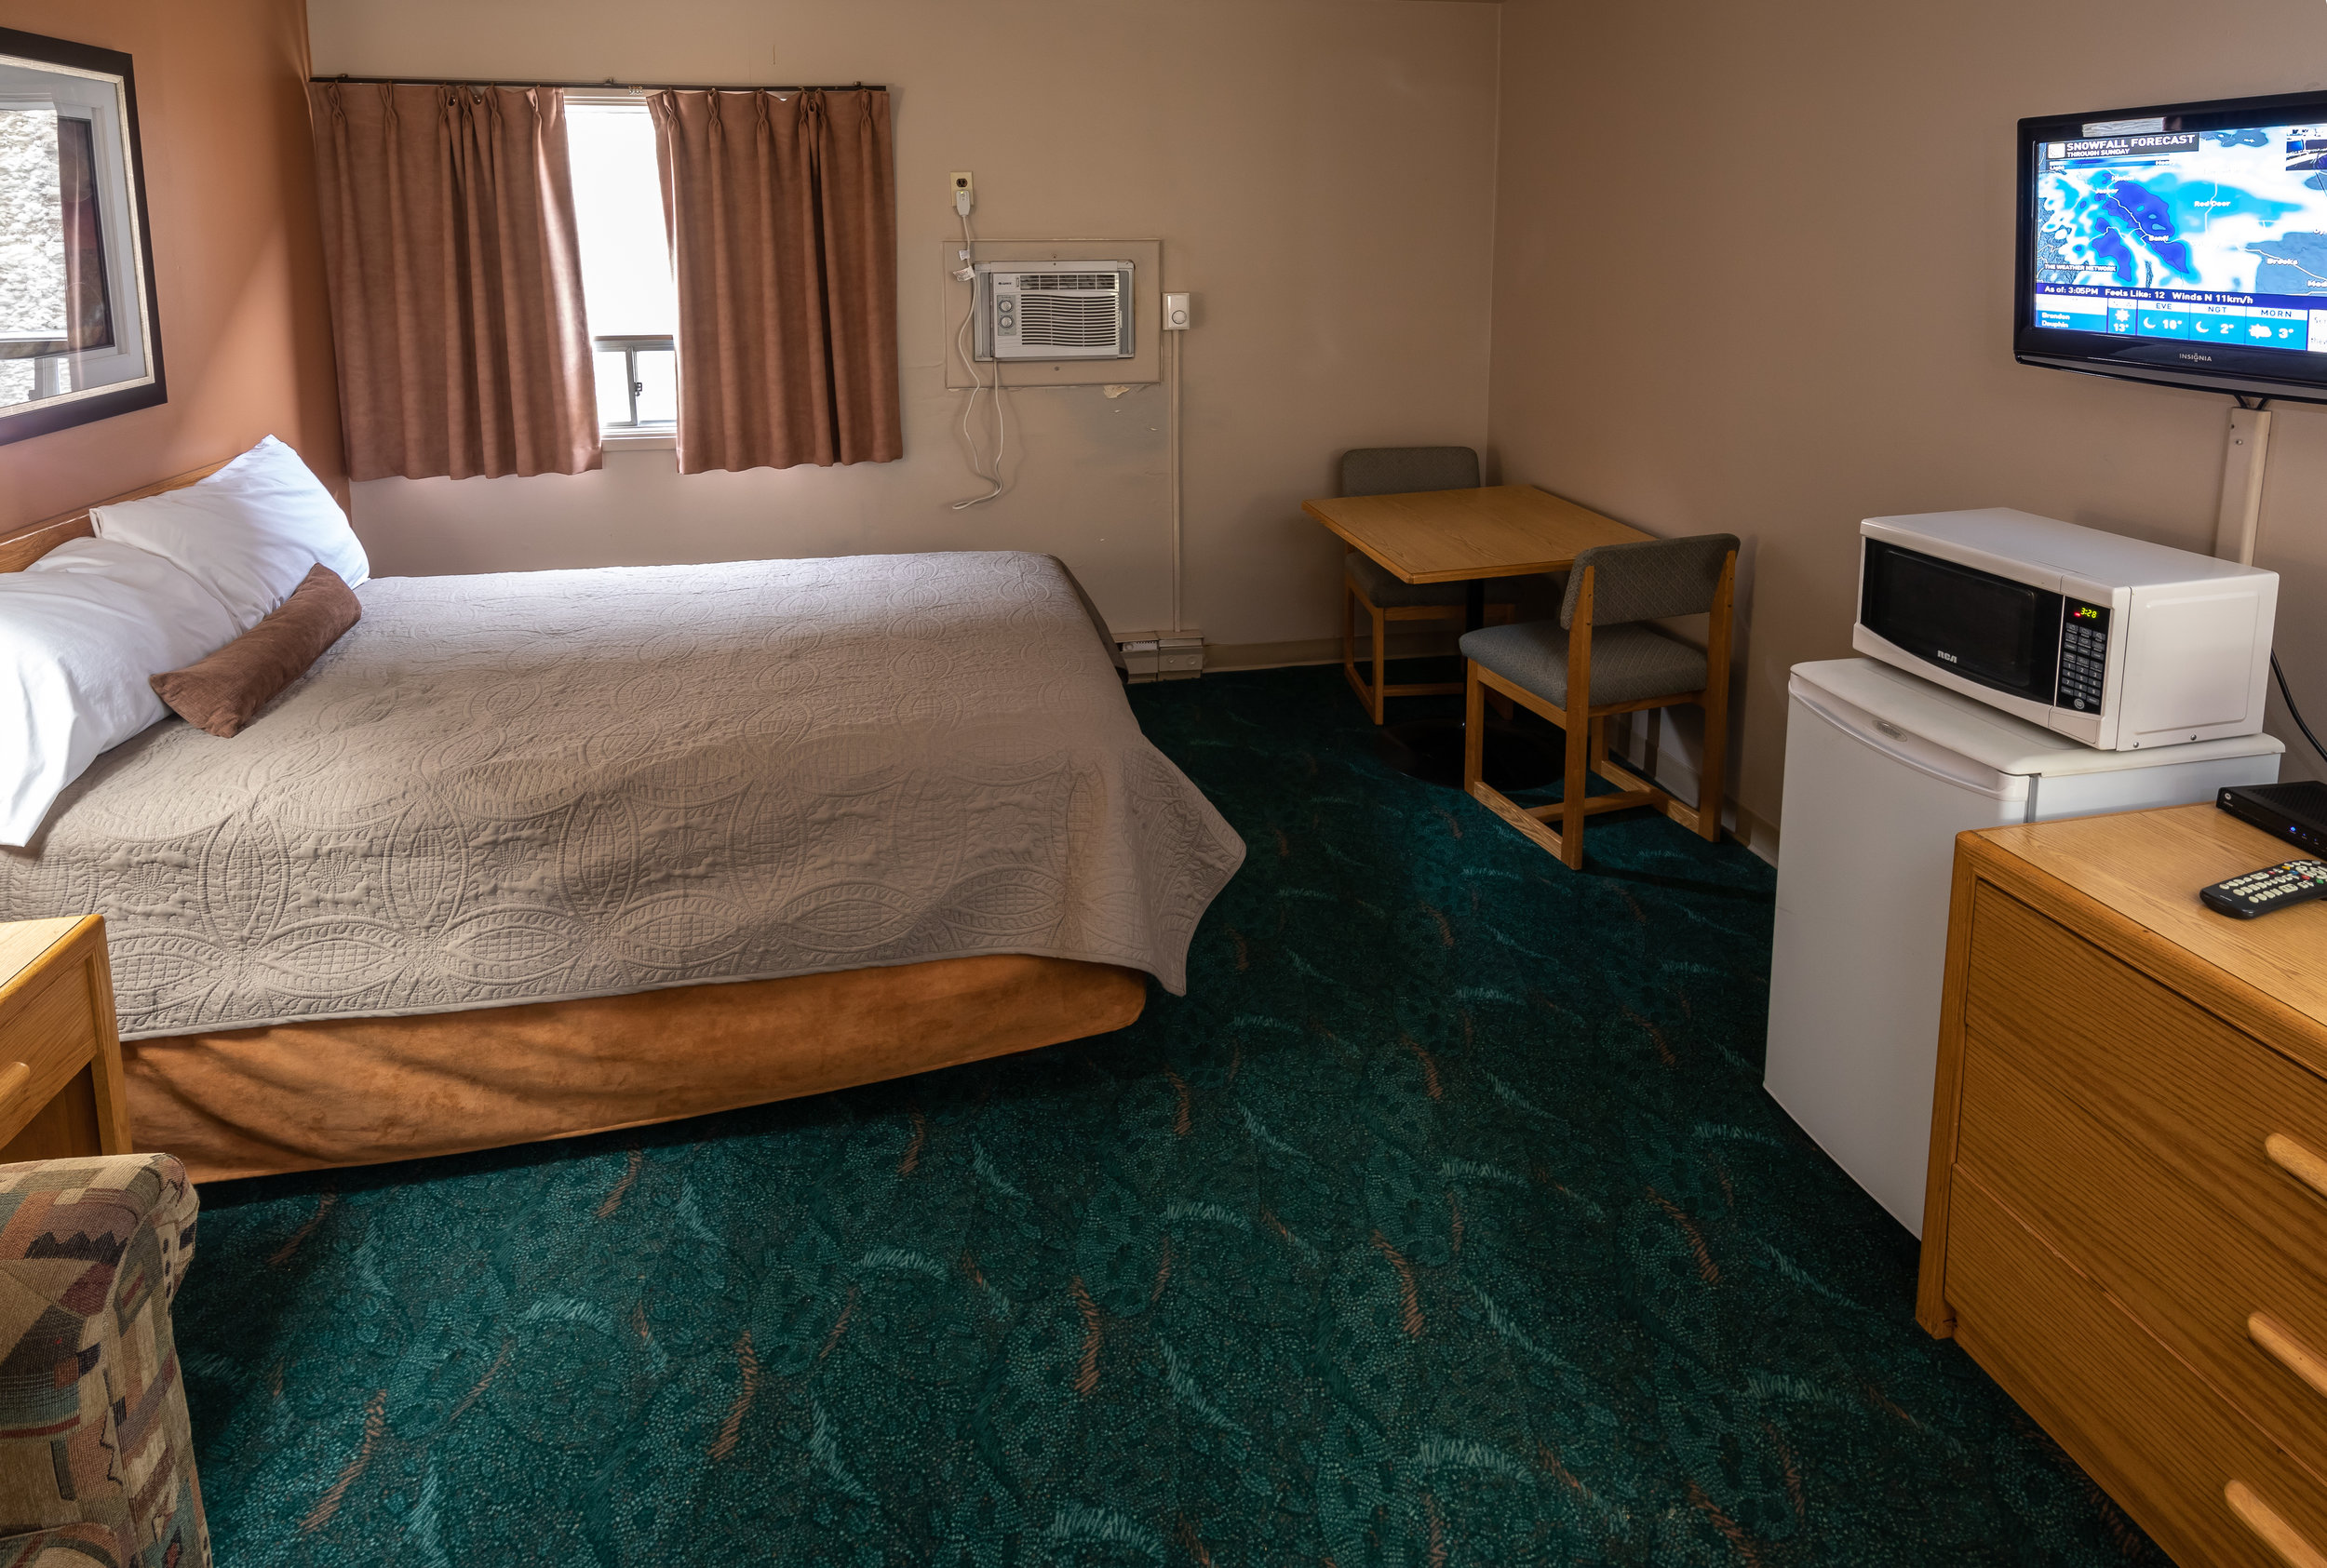 Queen/Double Bed & Hide-a-bed - 1 Person: $86.002 People: $93.003/4 Adults: $98.00Family (with kids 12 & under): $93.00